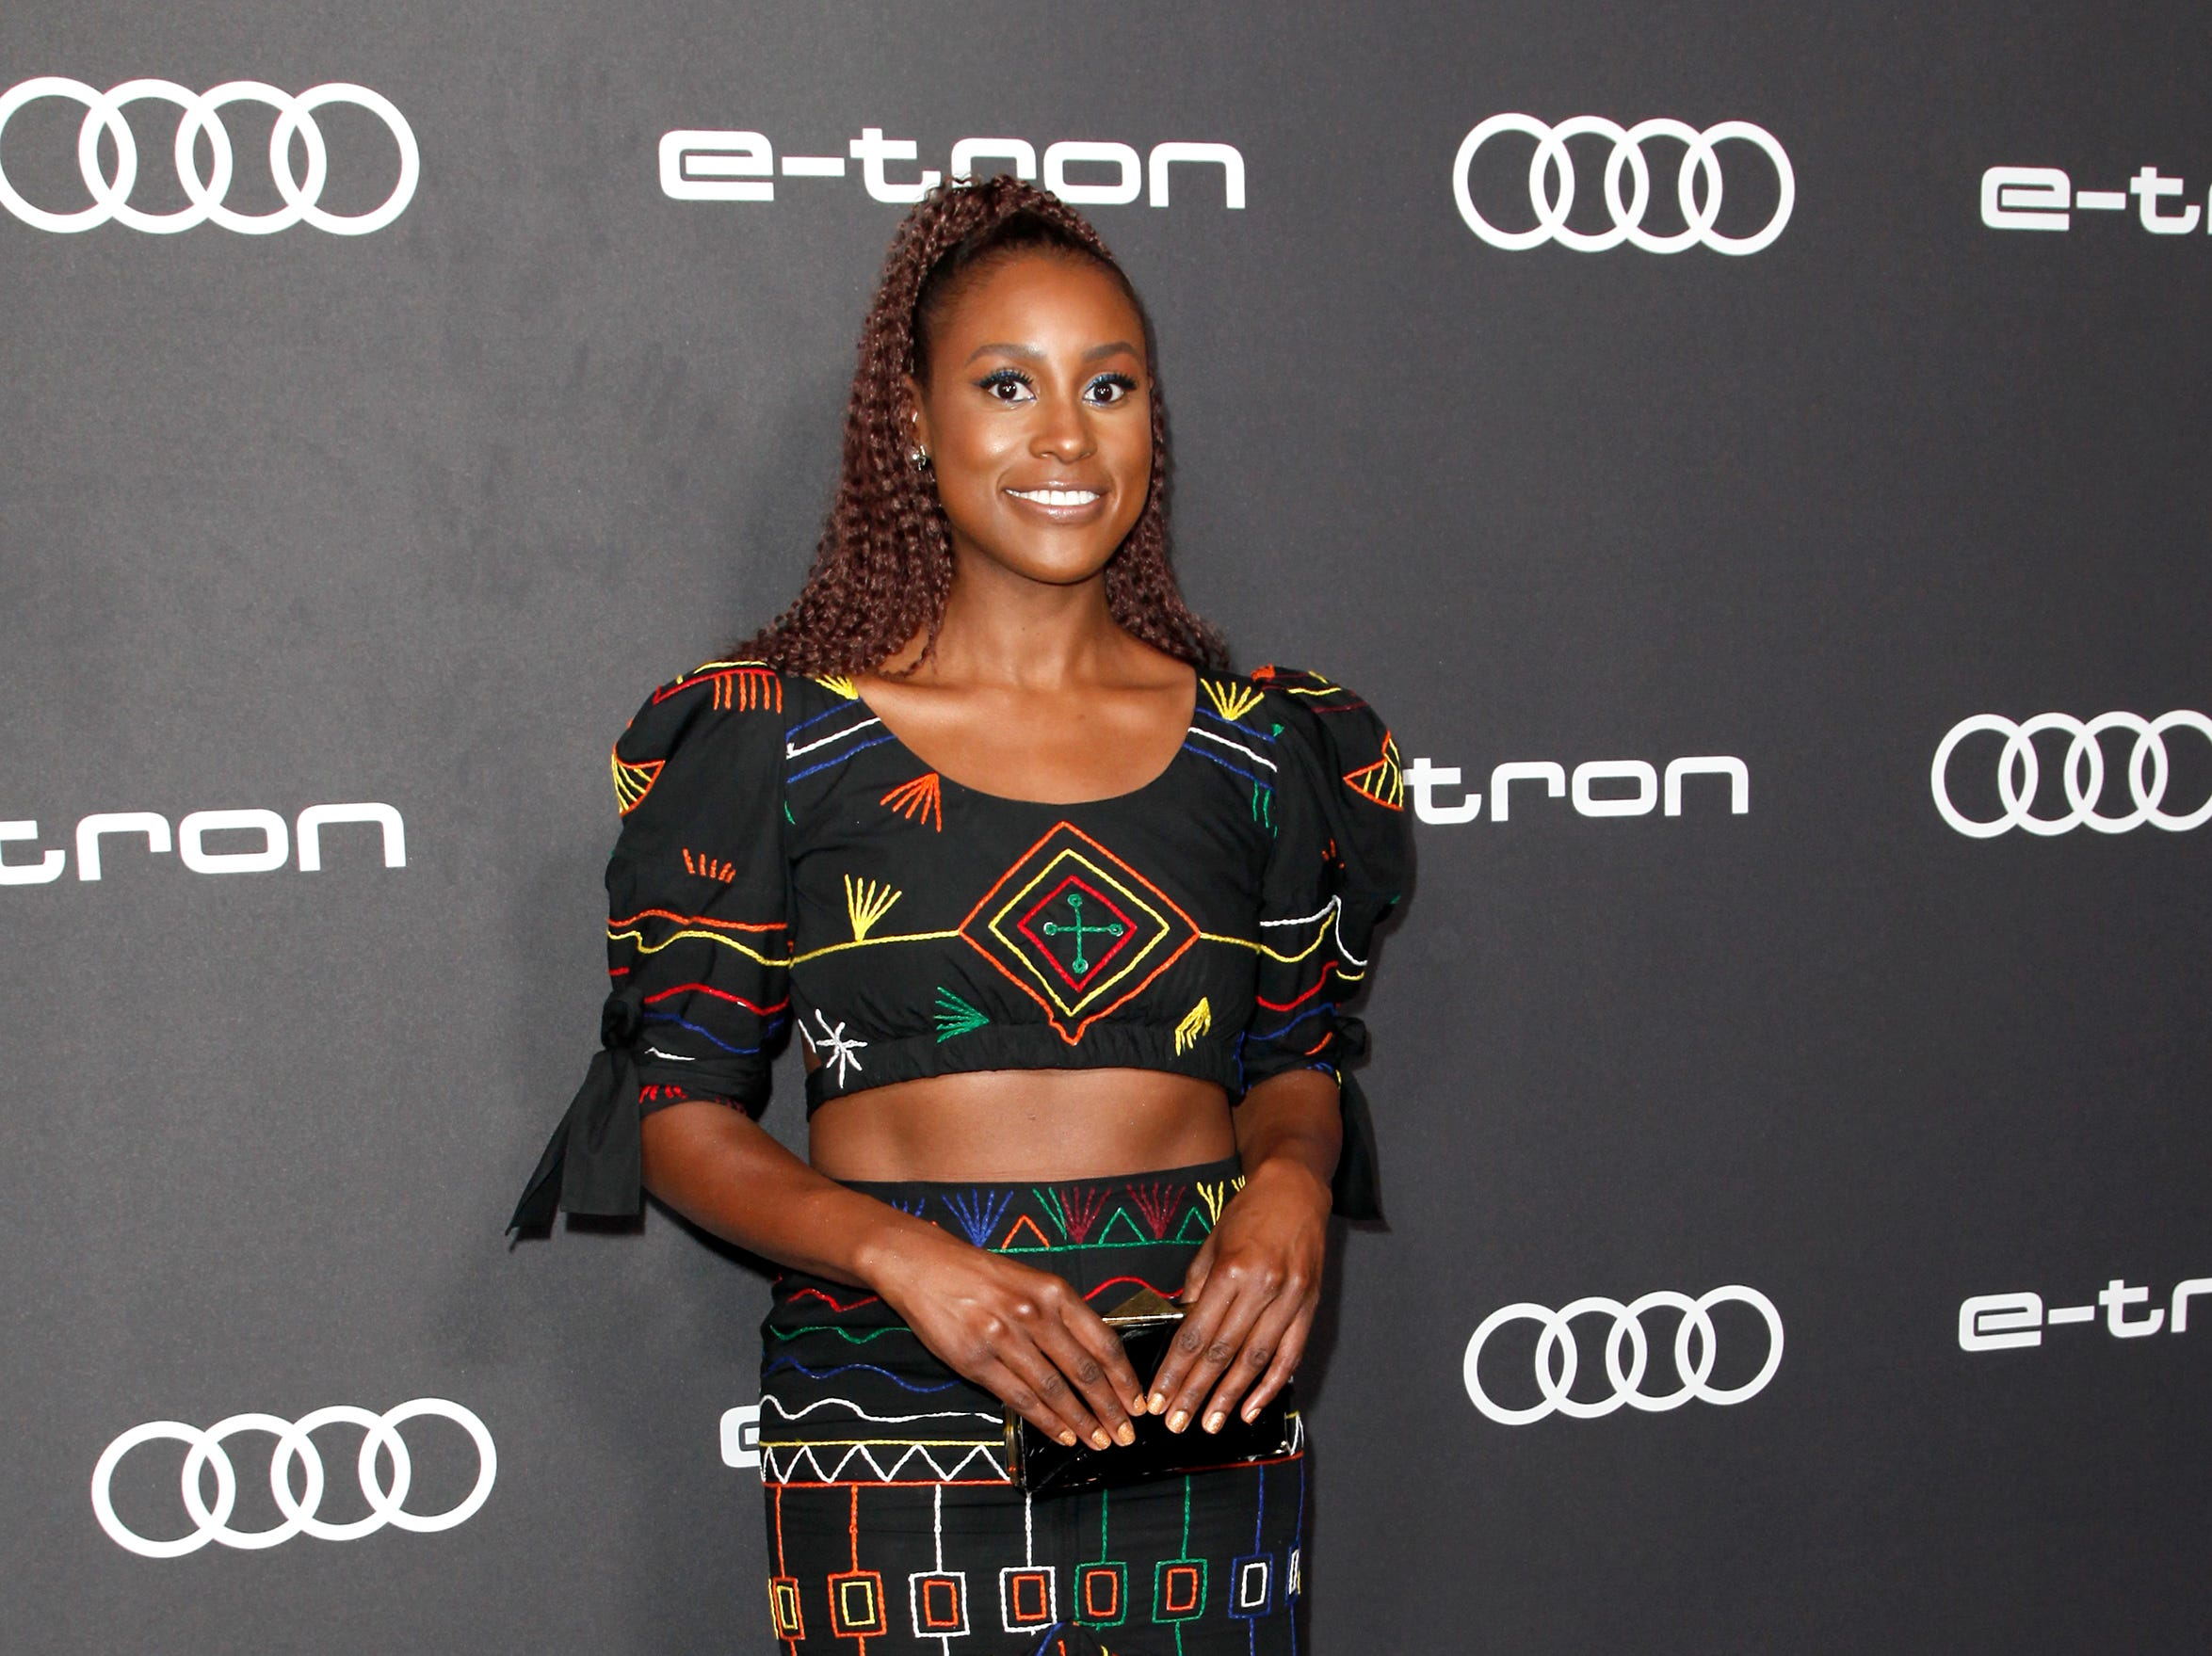 WEST HOLLYWOOD, CA - SEPTEMBER 14:  Issa Rae attends the Audi pre-Emmy celebration at Kimpton La Peer Hotel on September 14, 2018 in West Hollywood, California.  (Photo by Tibrina Hobson/FilmMagic) ORG XMIT: 775221565 ORIG FILE ID: 1033432400